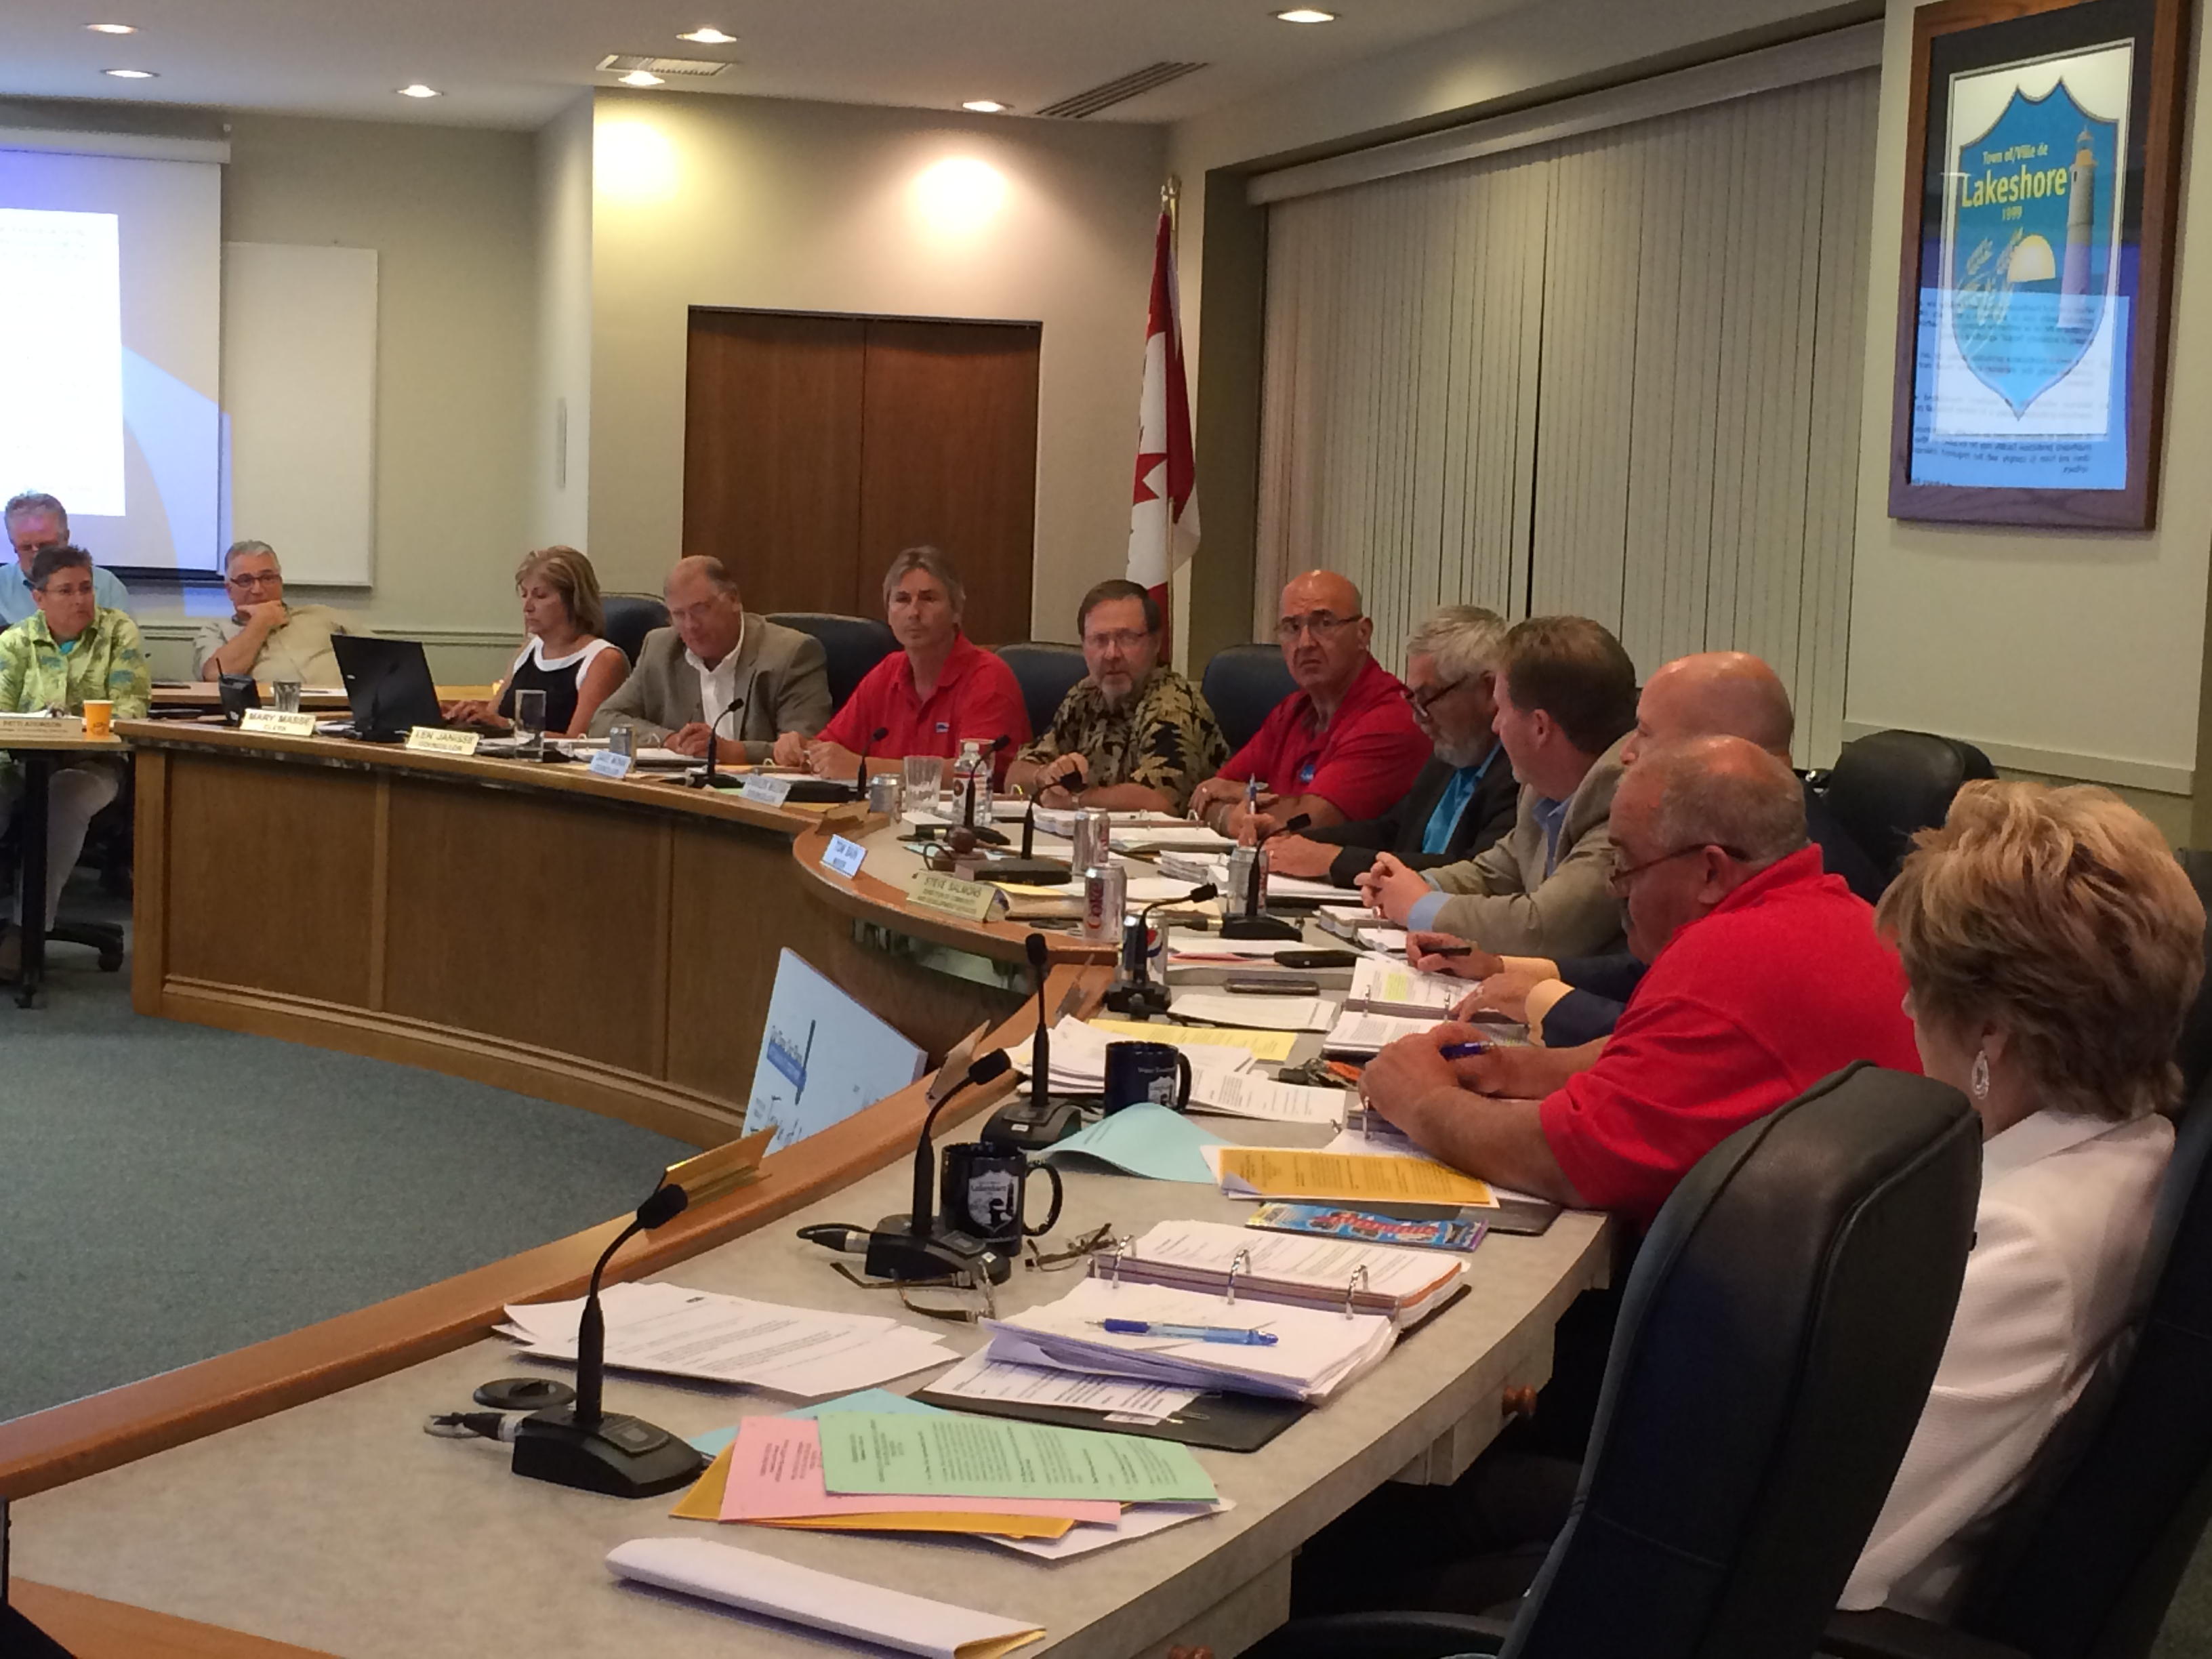 Lakeshore council meets for its regular meeting on July 15, 2014. (Photo by Ricardo Veneza)